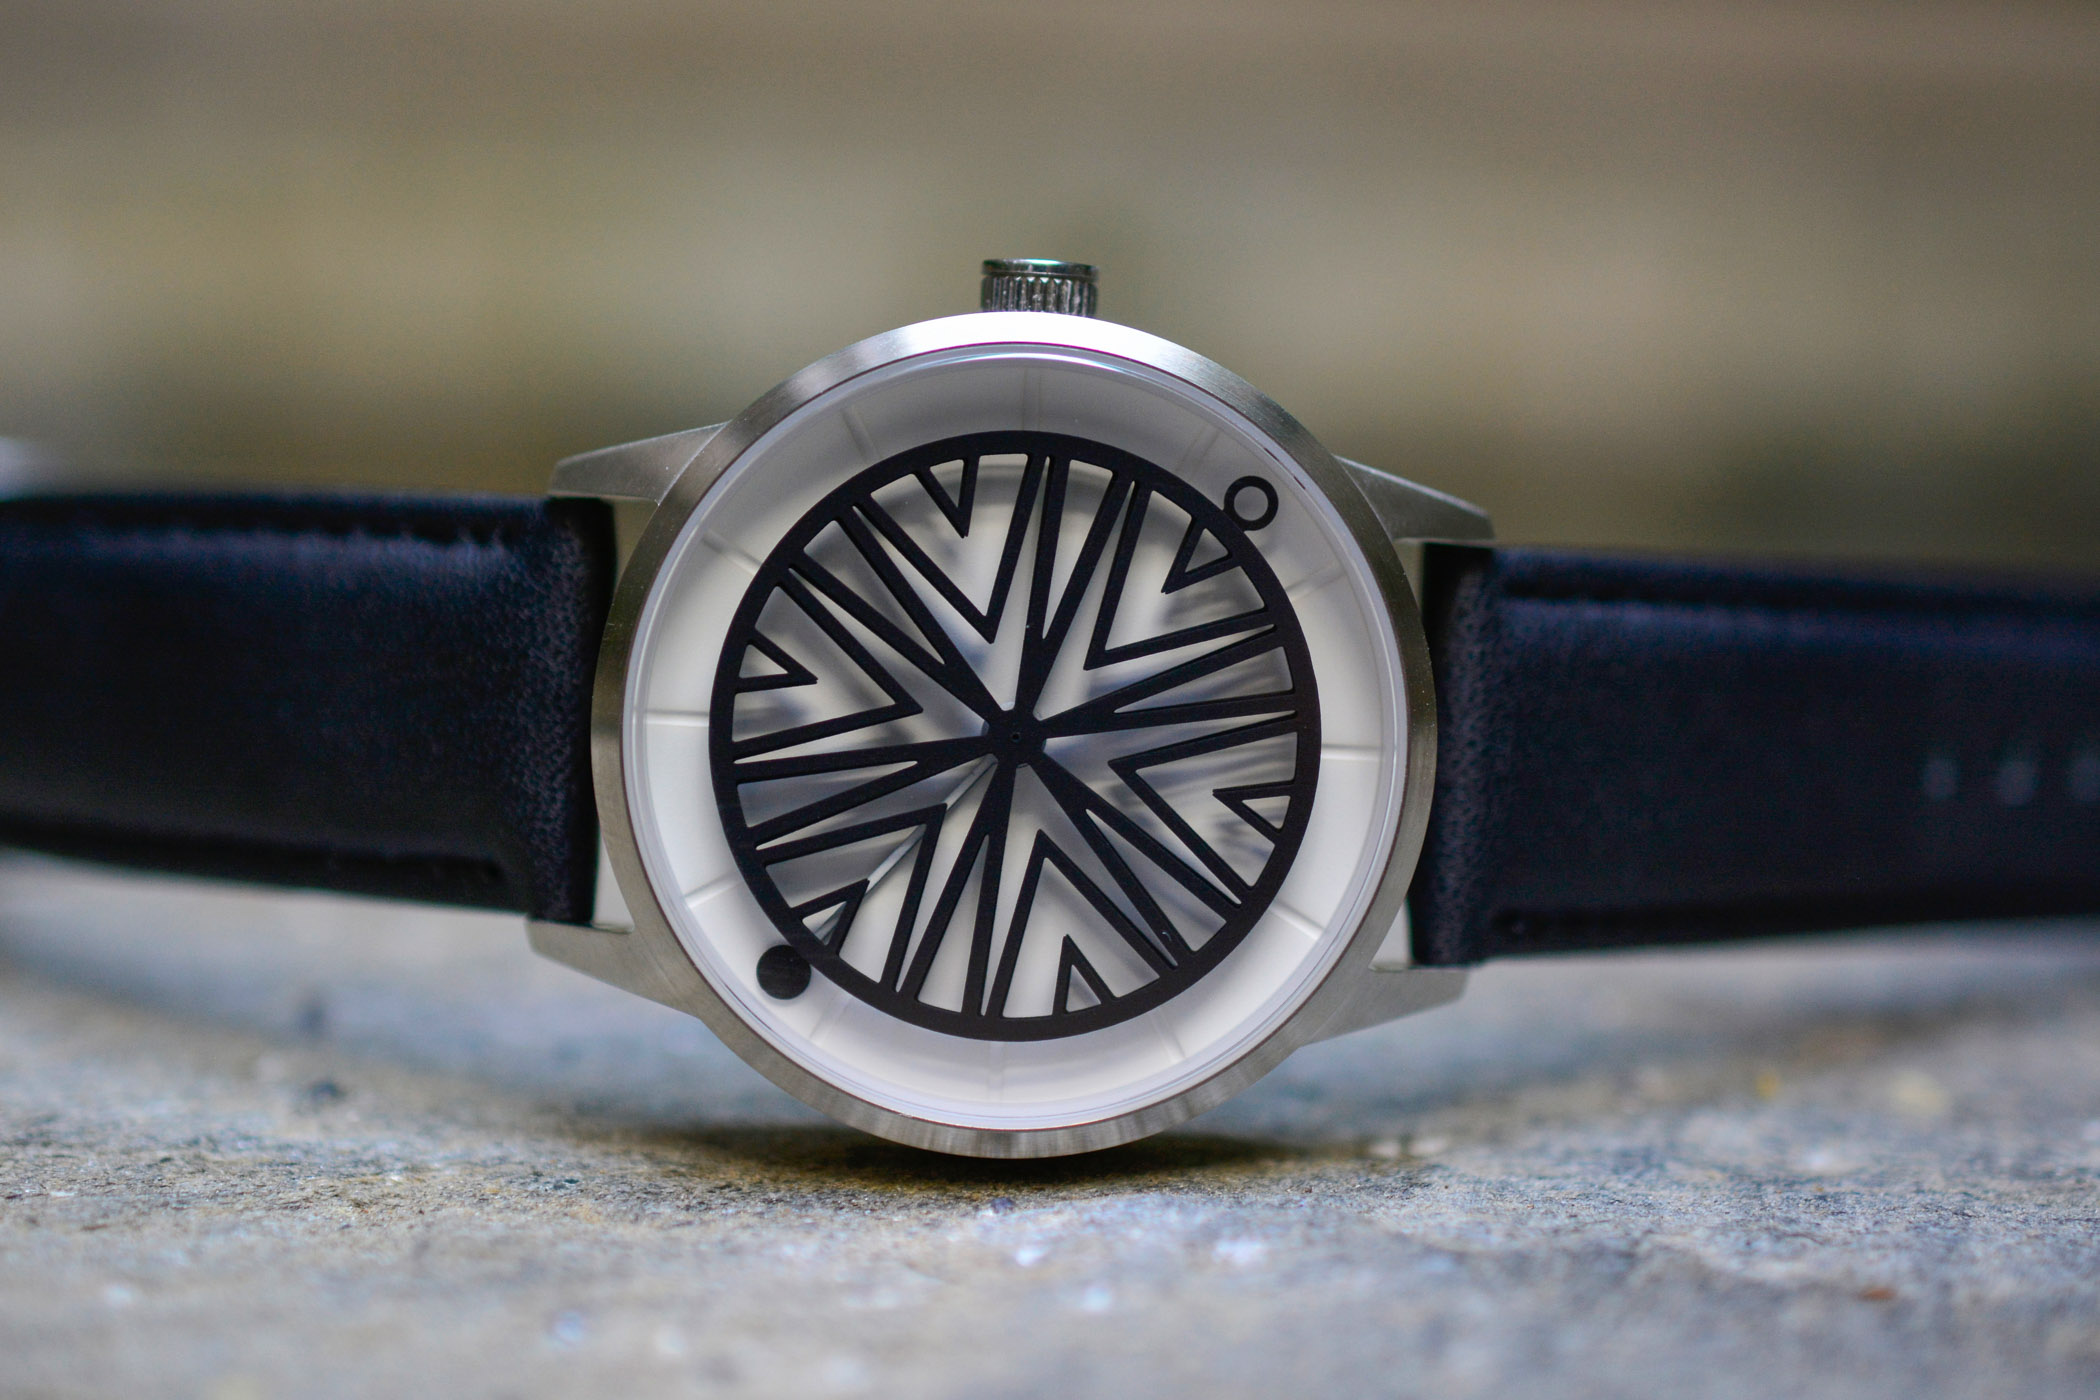 Humism Rhizome Automatic - Accessible Kinetic Art Watch